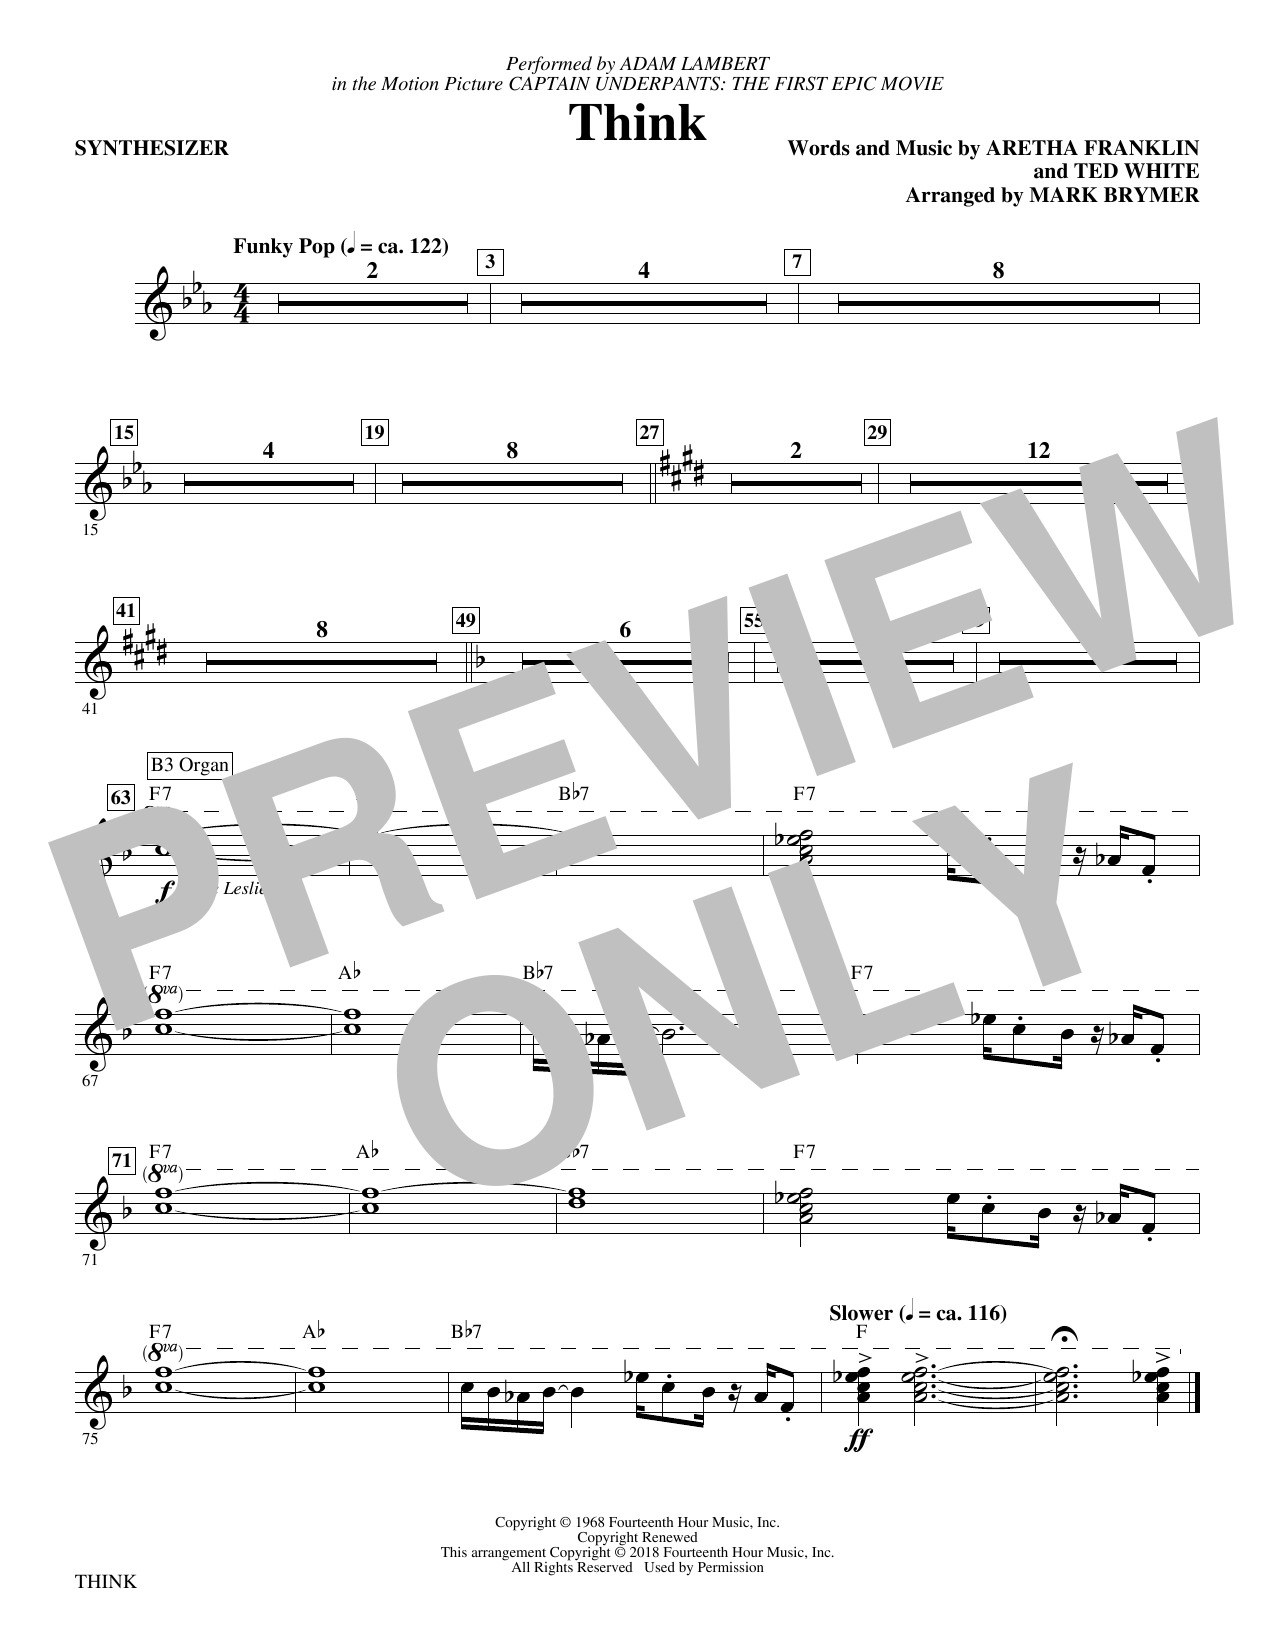 Adam Lambert 'Think (from Captain Underpants: The First Epic Movie) (Arr   Mark Brymer) - Synthesizer' Sheet Music Notes, Chords | Download Printable